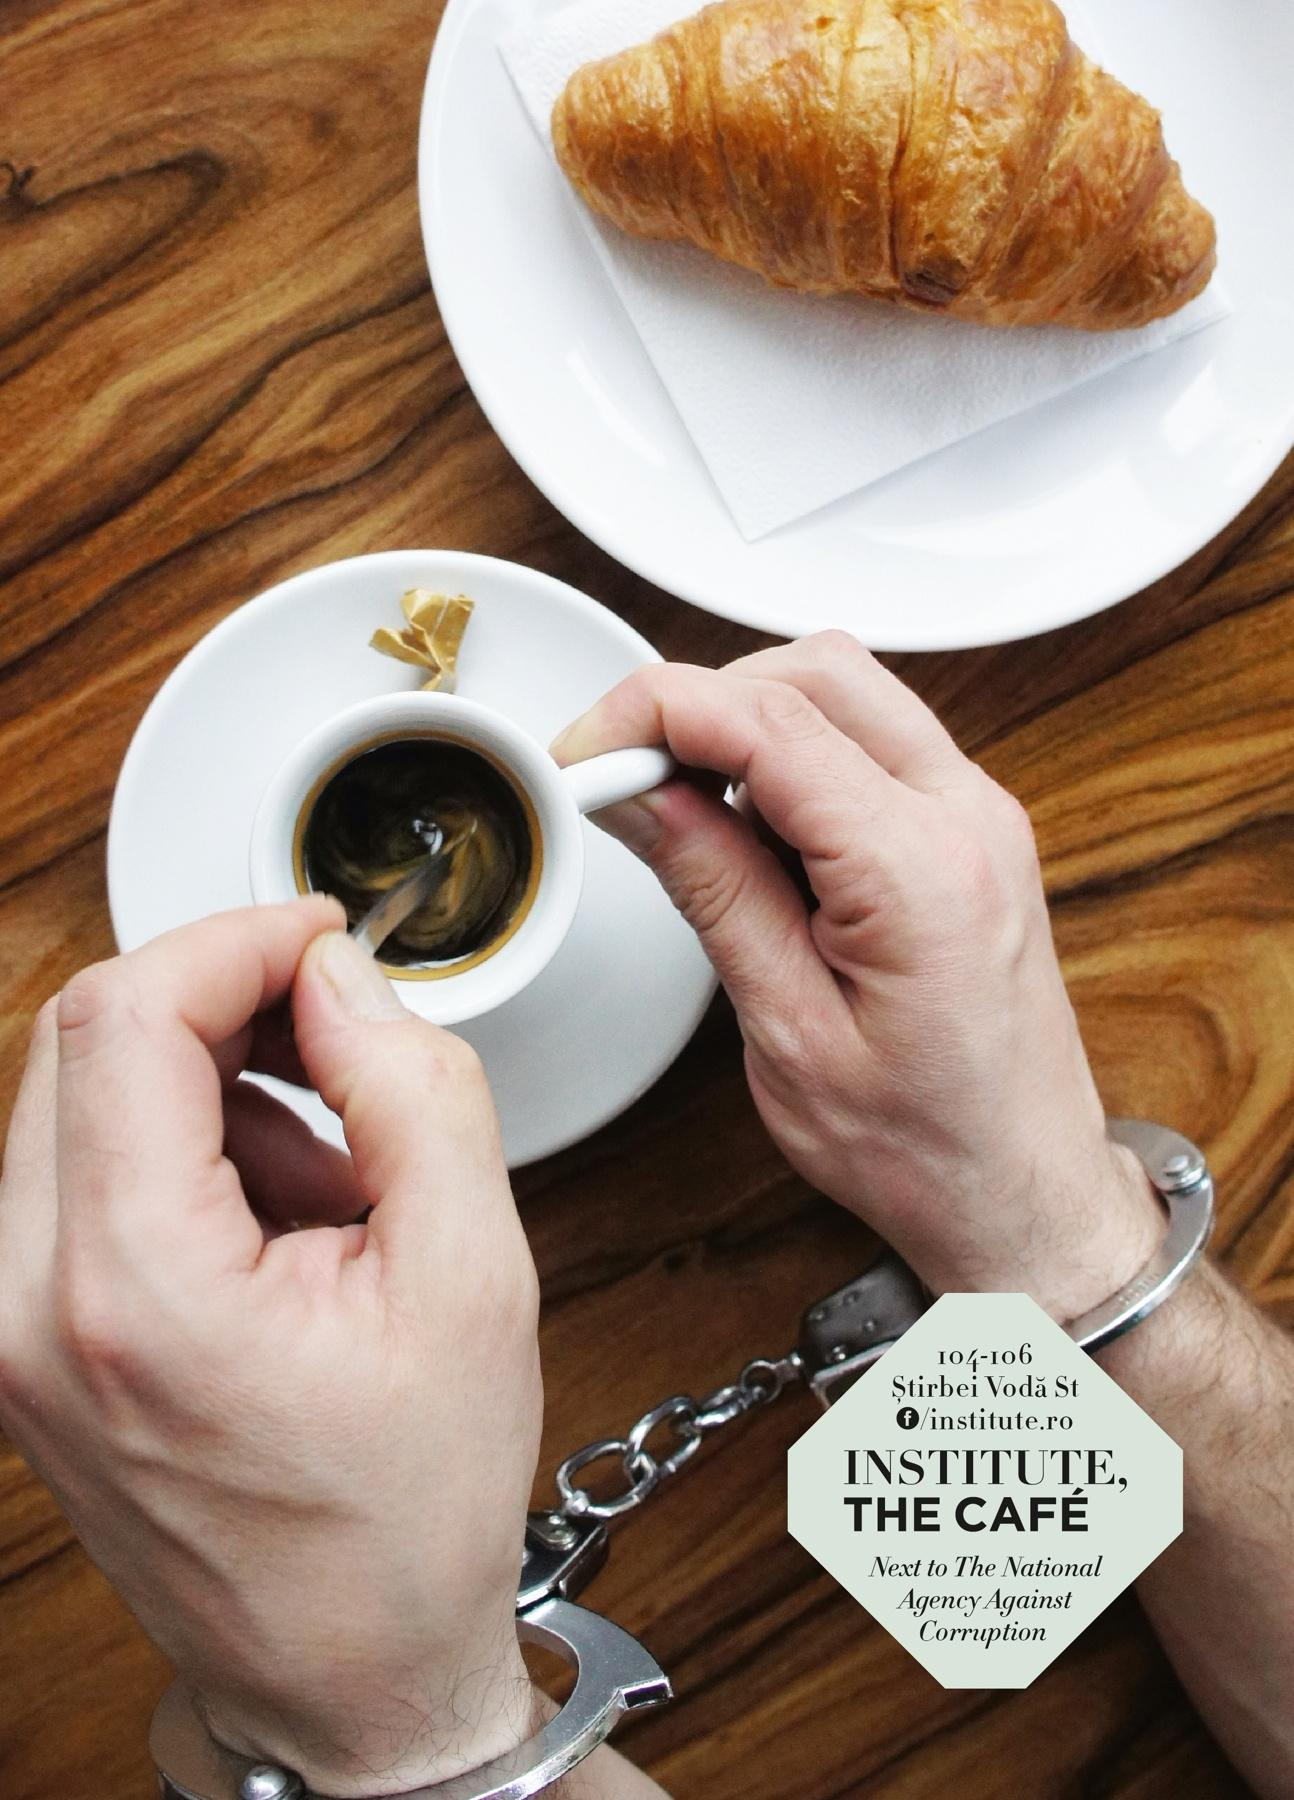 institute.ro Print Ad -  The handcuffs